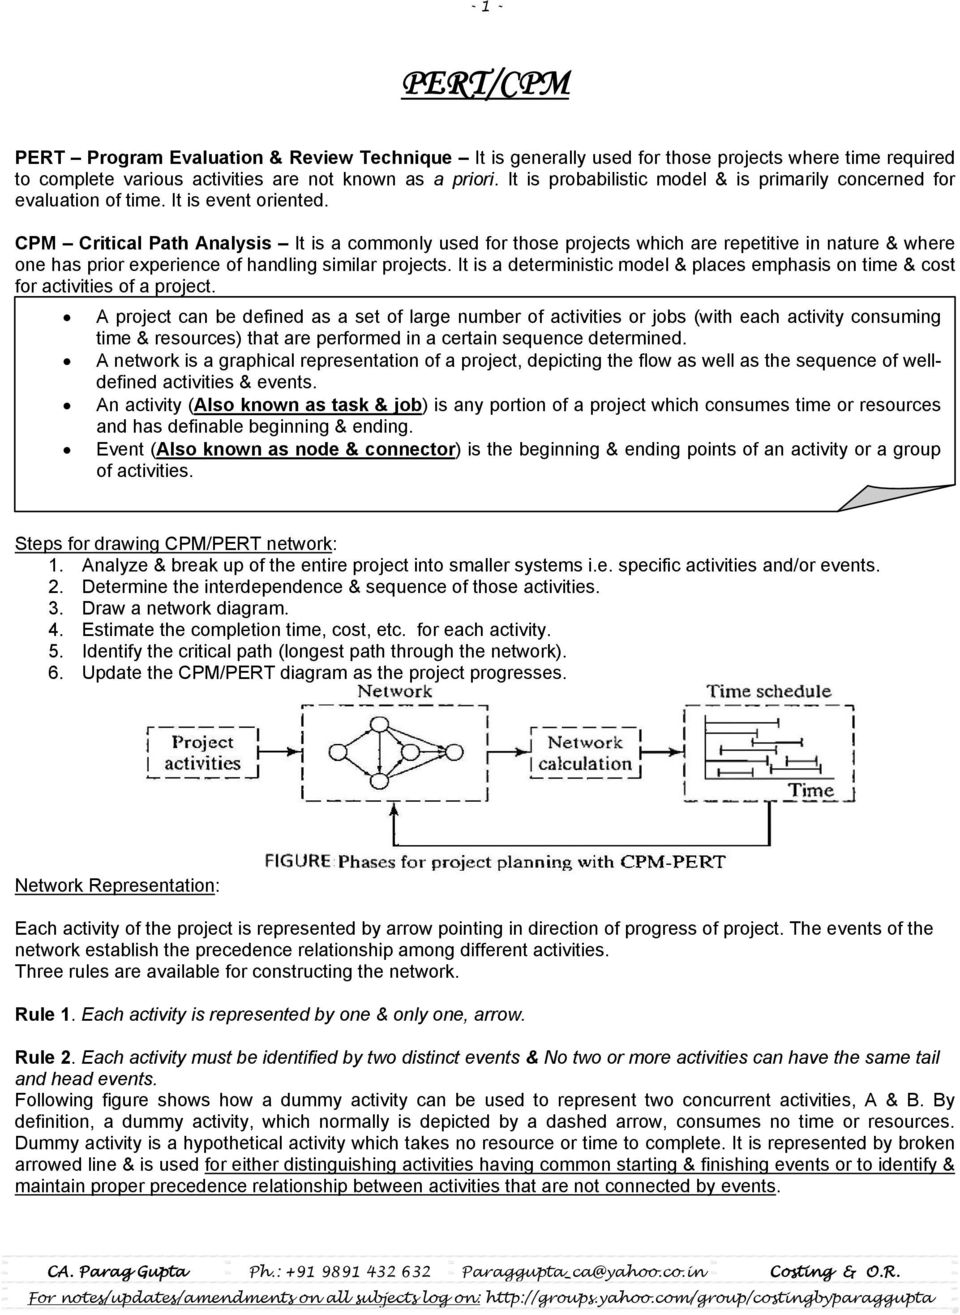 medium resolution of cpm critical path analysis it is a commonly used for those projects which are repetitive in